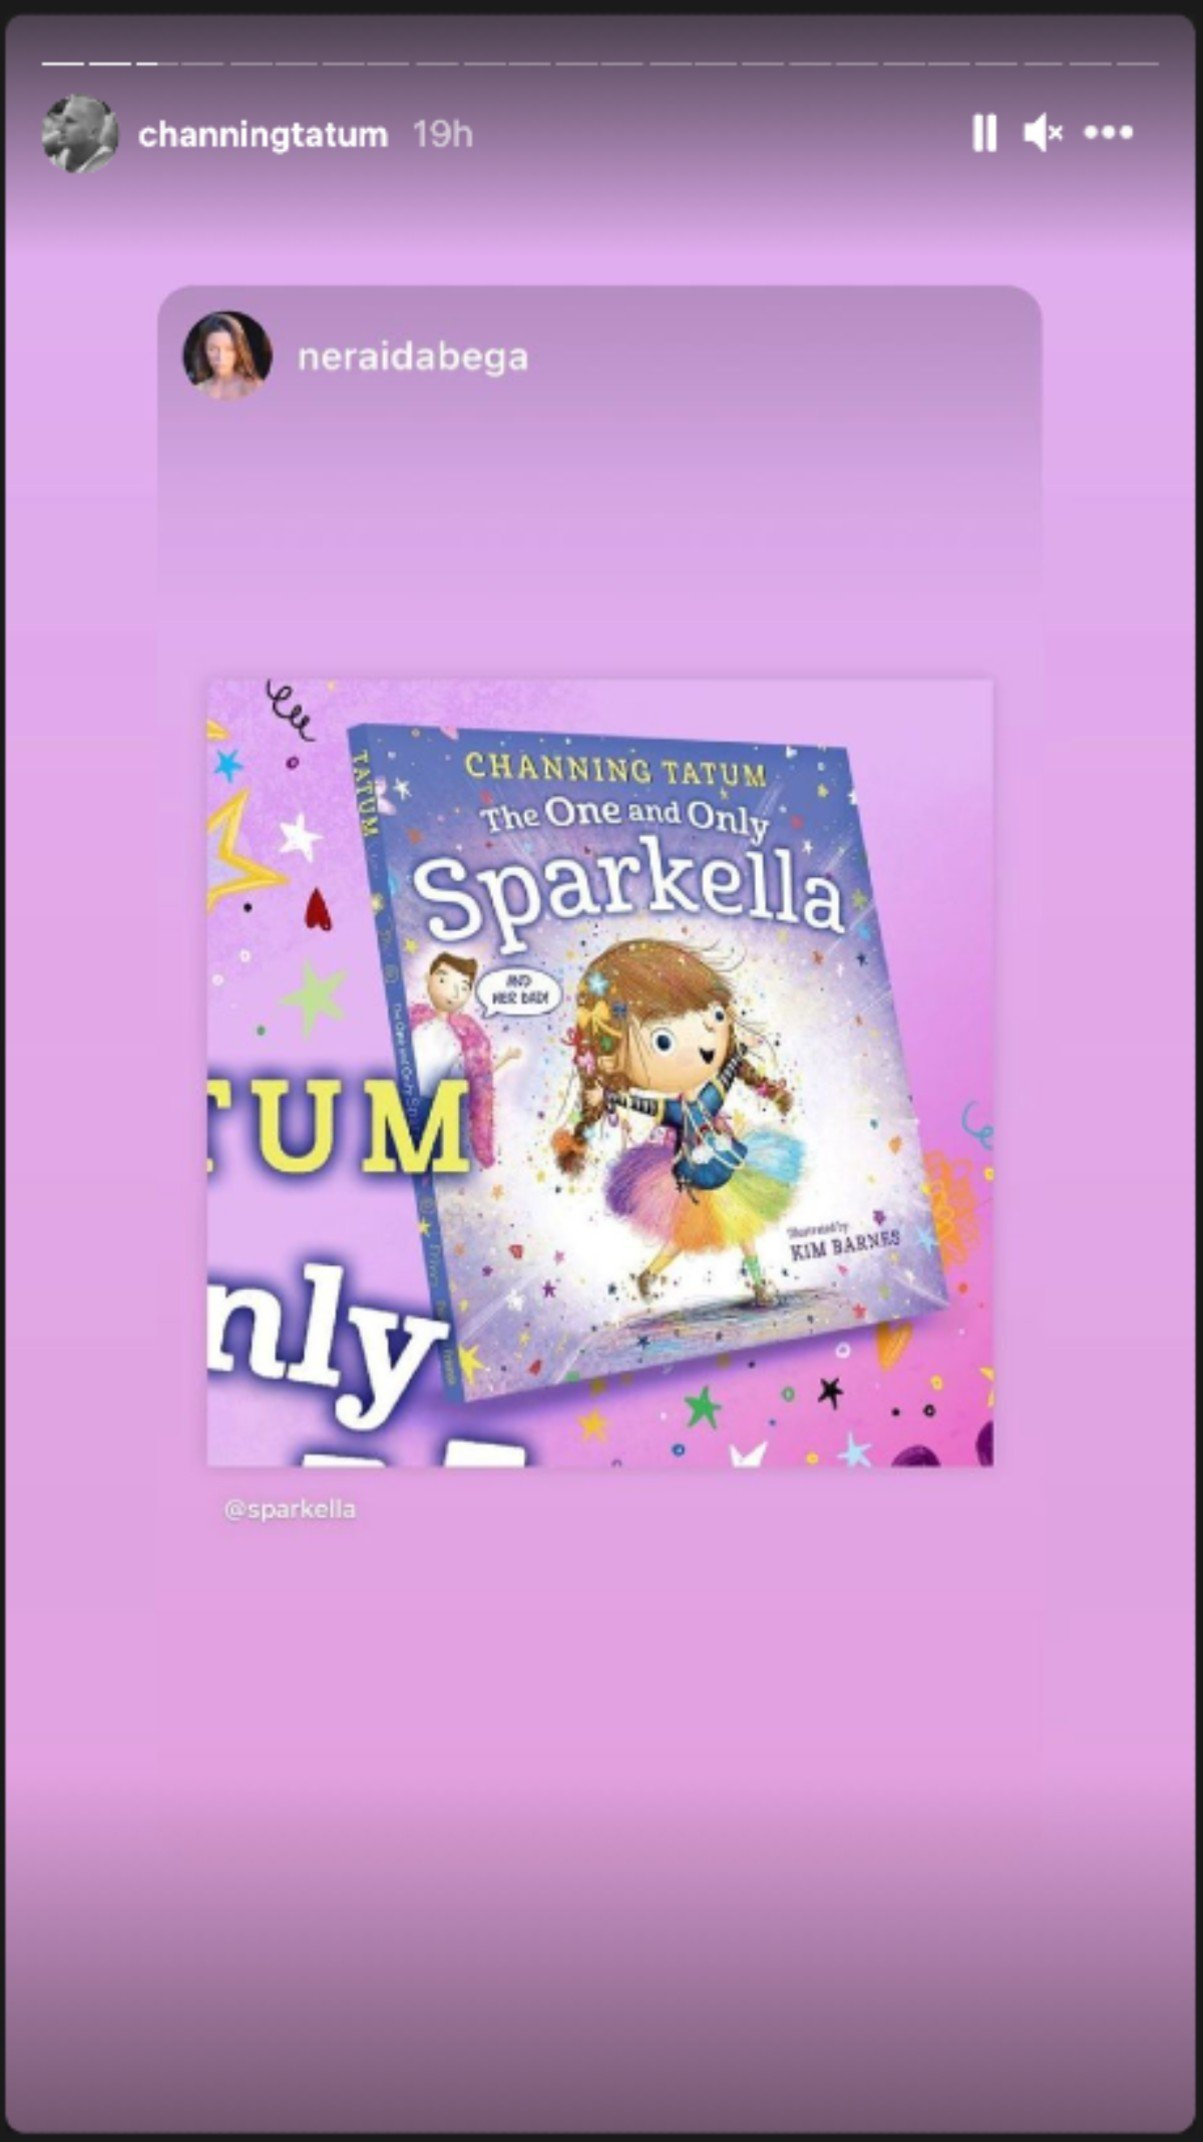 The One and Only Sparkella cover